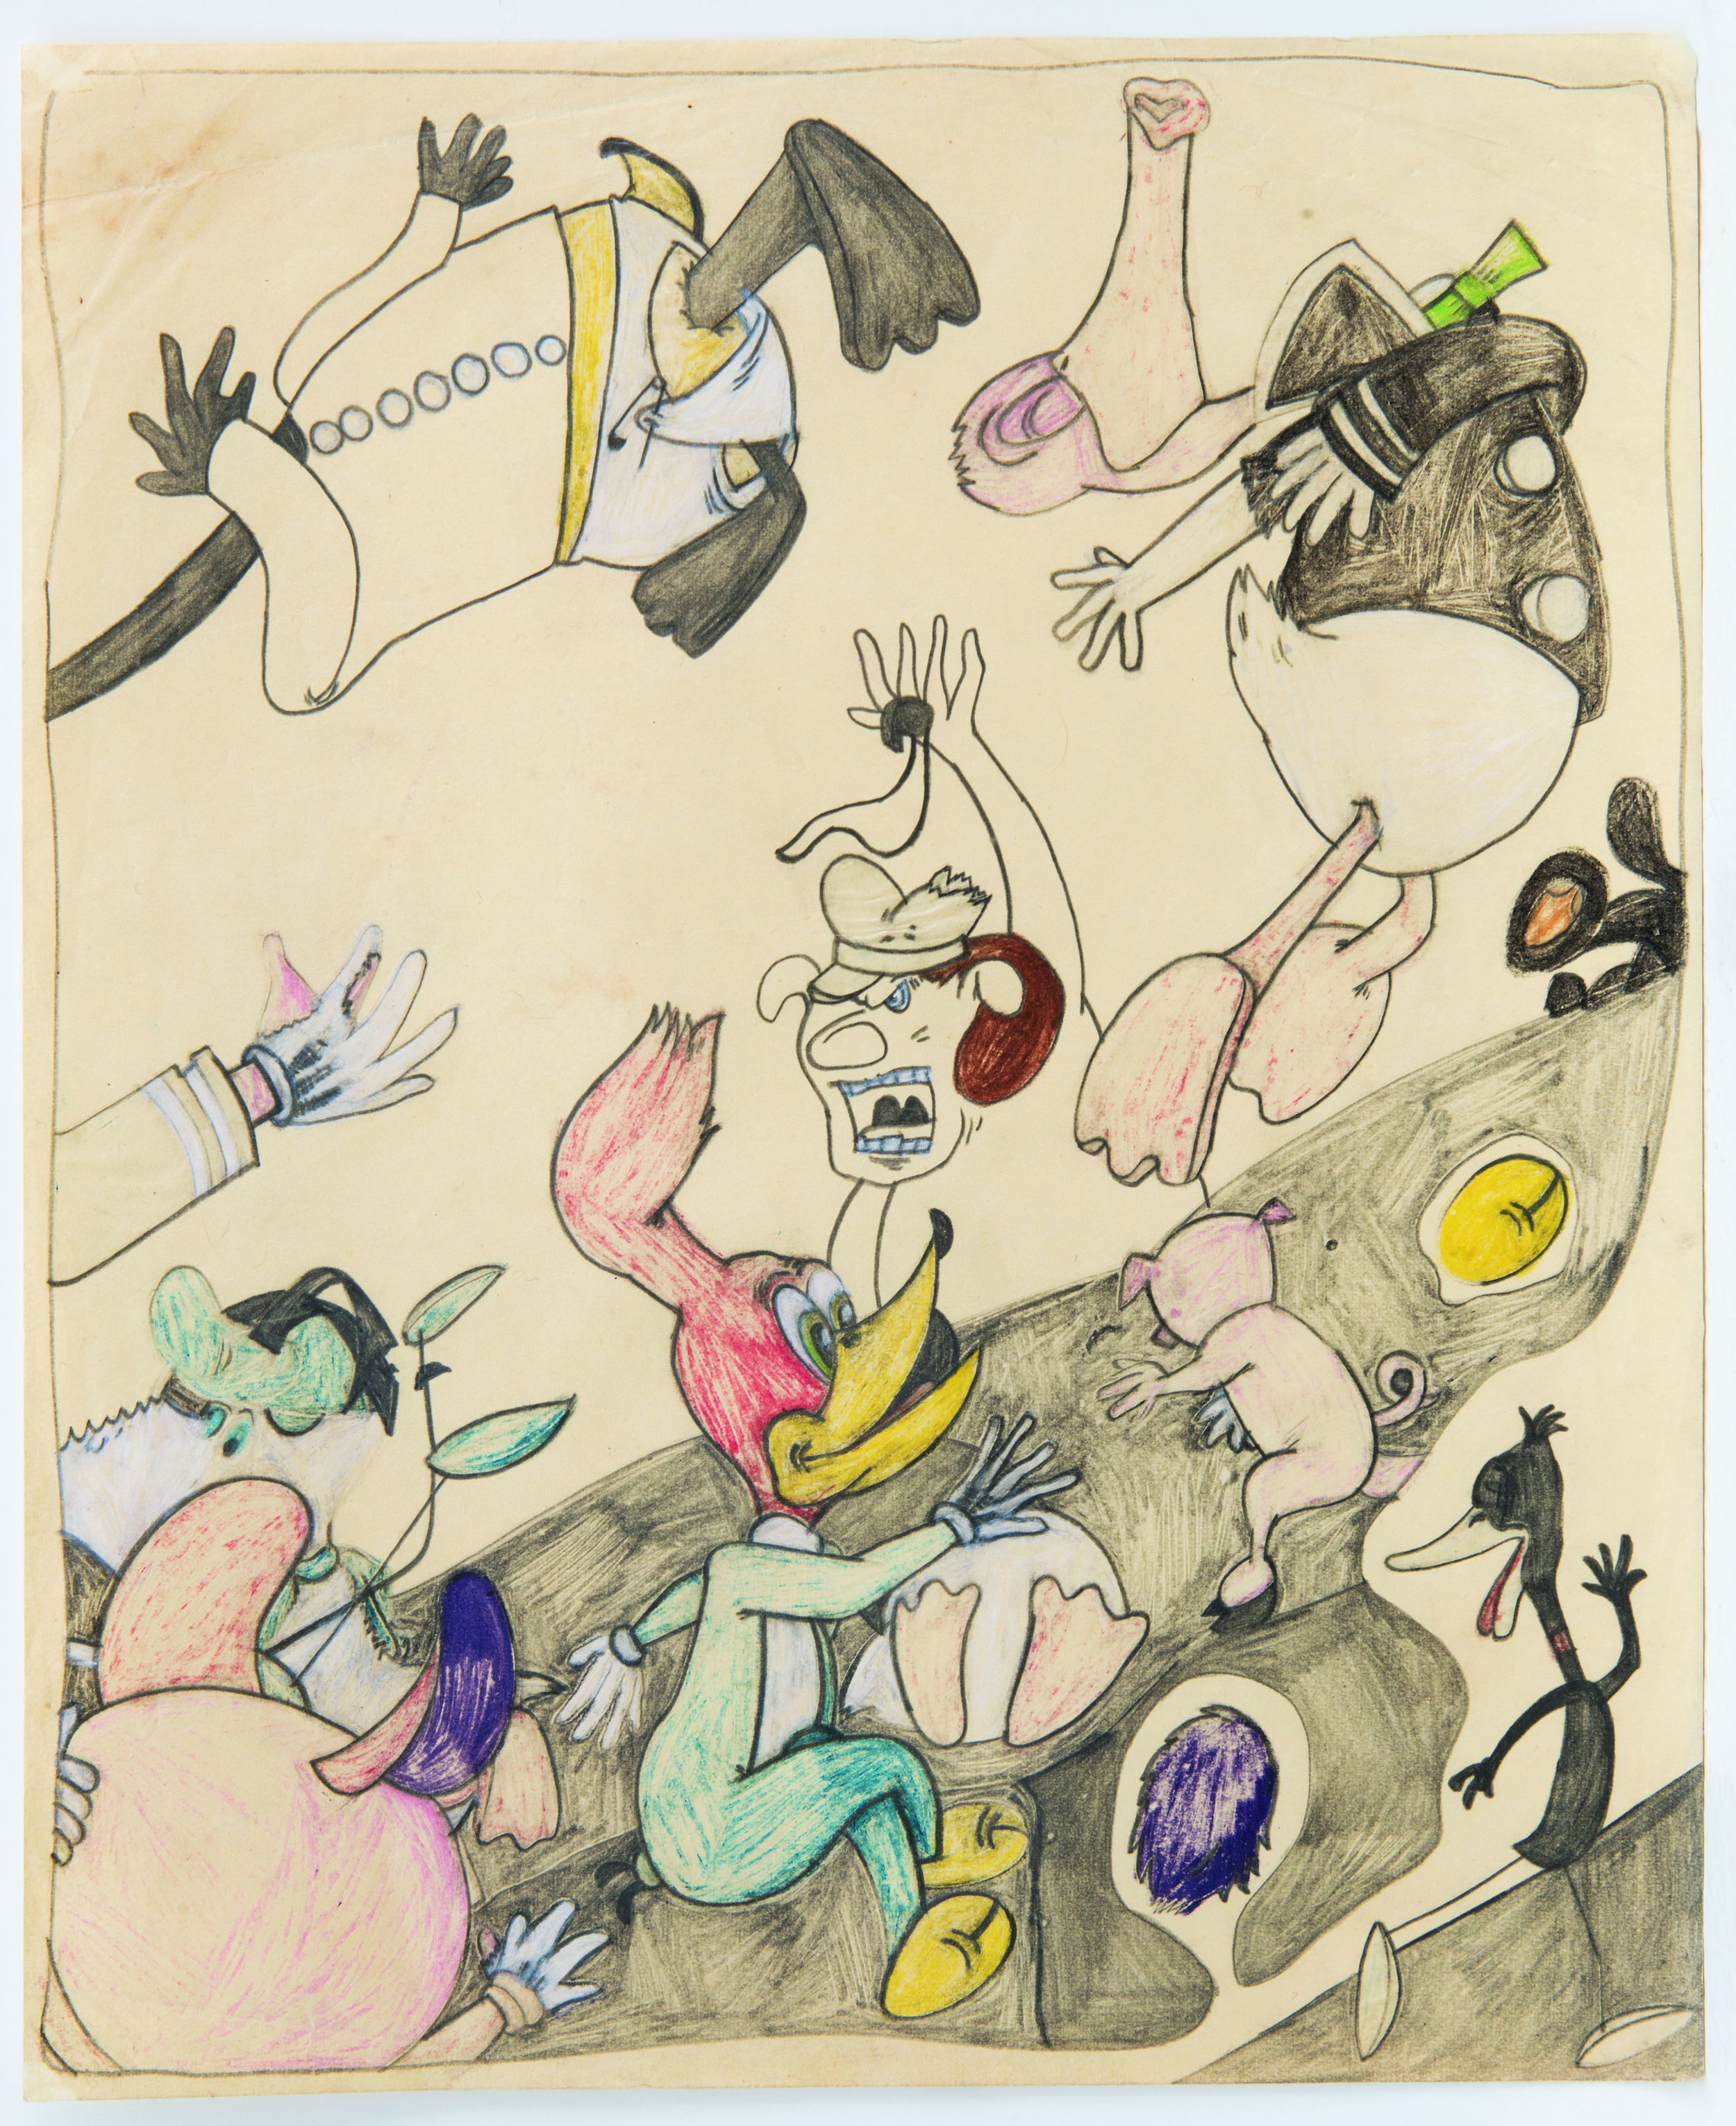 Susan Te Kahurangi King (New Zealand, b. 1951). Untitled, c. 1965. Graphite and colored pencil on paper, 11x9 in. (27.9x22.9 cm), A30806. Collection of KAWS, courtesy of the artist, Chris Byrne and Andrew Edlin Gallery